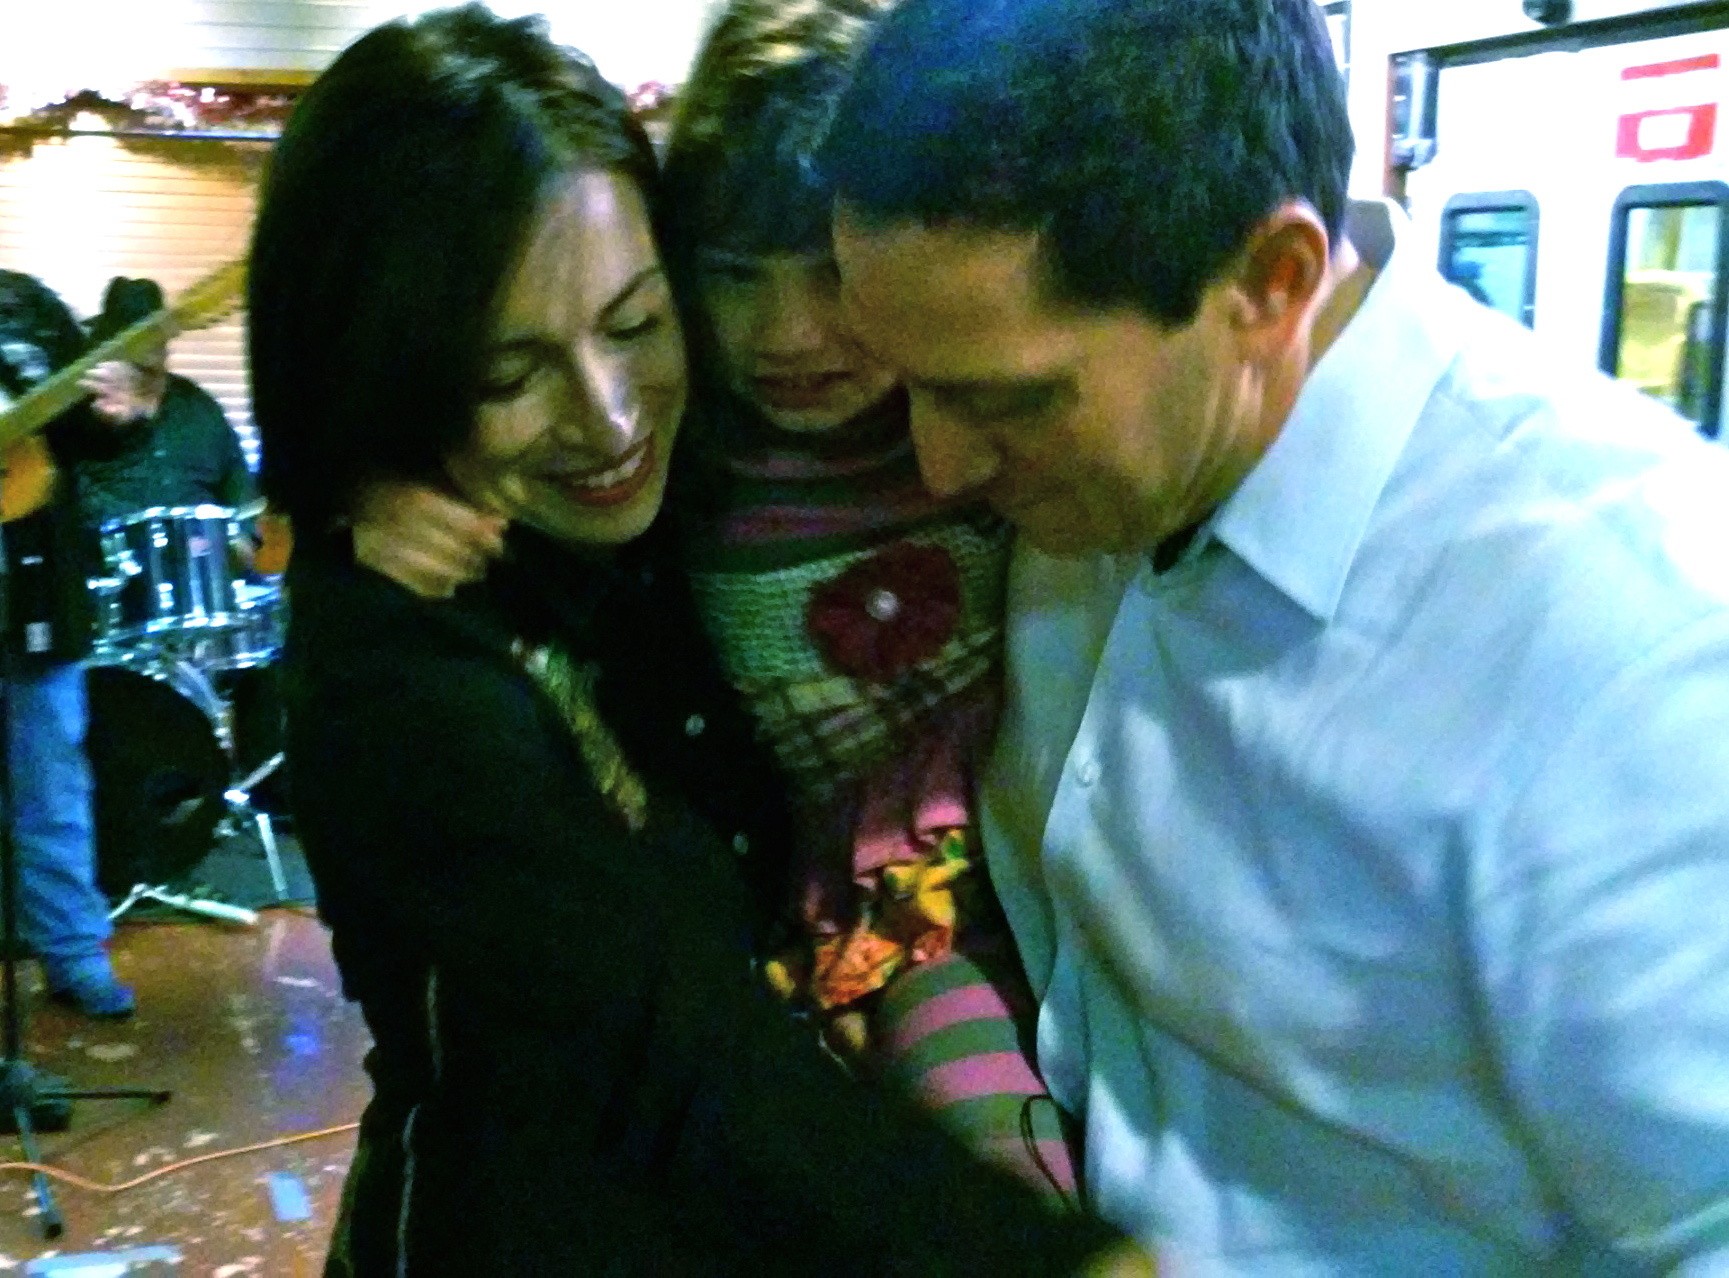 State Rep. Trey Martinez Fischer (D-116) dances with wife Elizabeth and daughter Camilla after announcing his run for the state Senate District 26 seat at Henry's Puffy Tacos on Sunday, Dec. 13, 2015. Photo by Edmond Ortiz